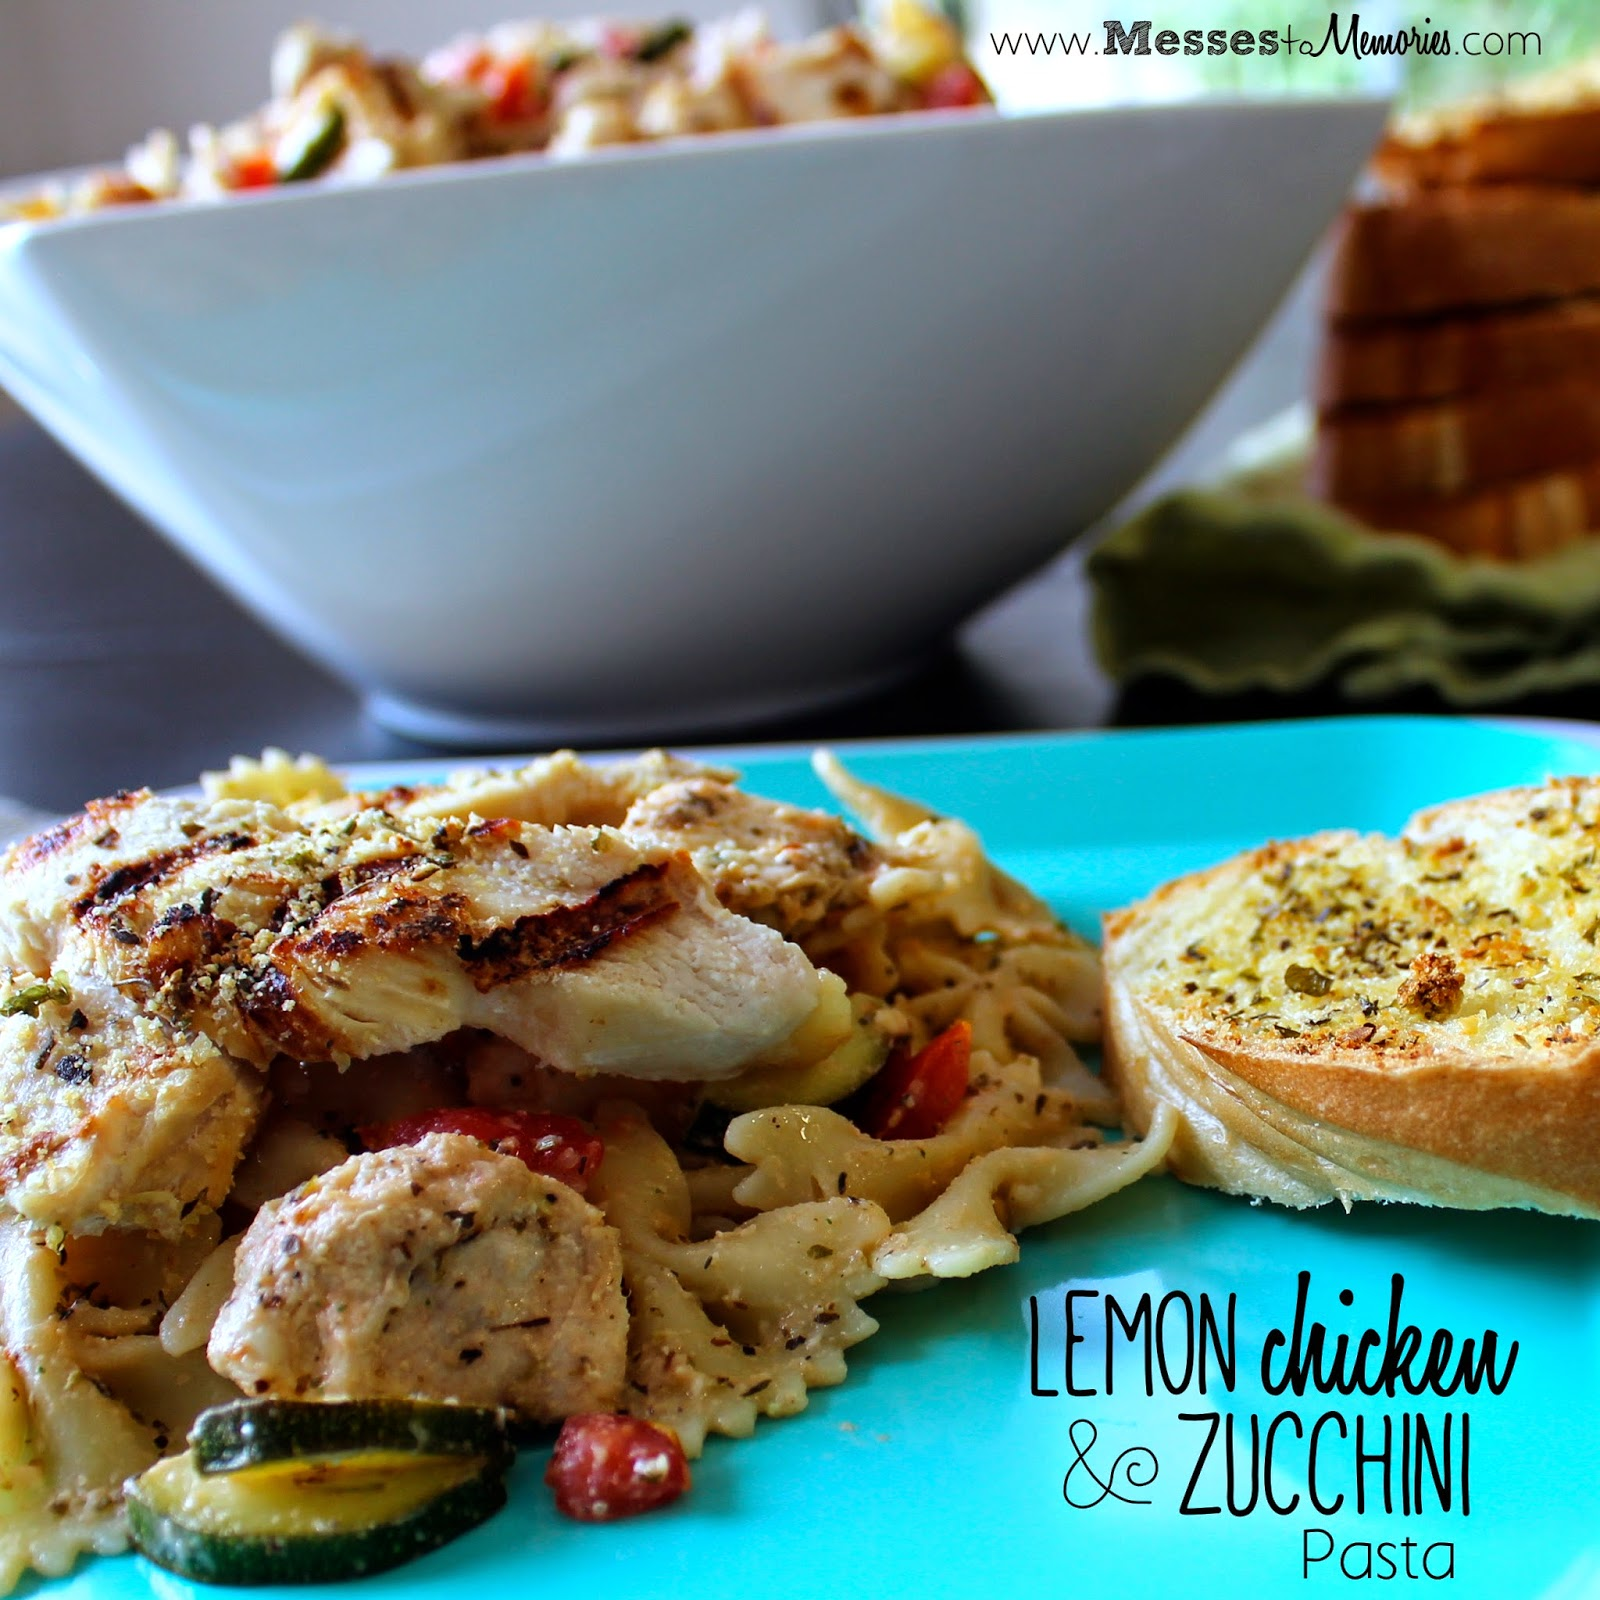 Lemon Chicken and Zucchini Pasta